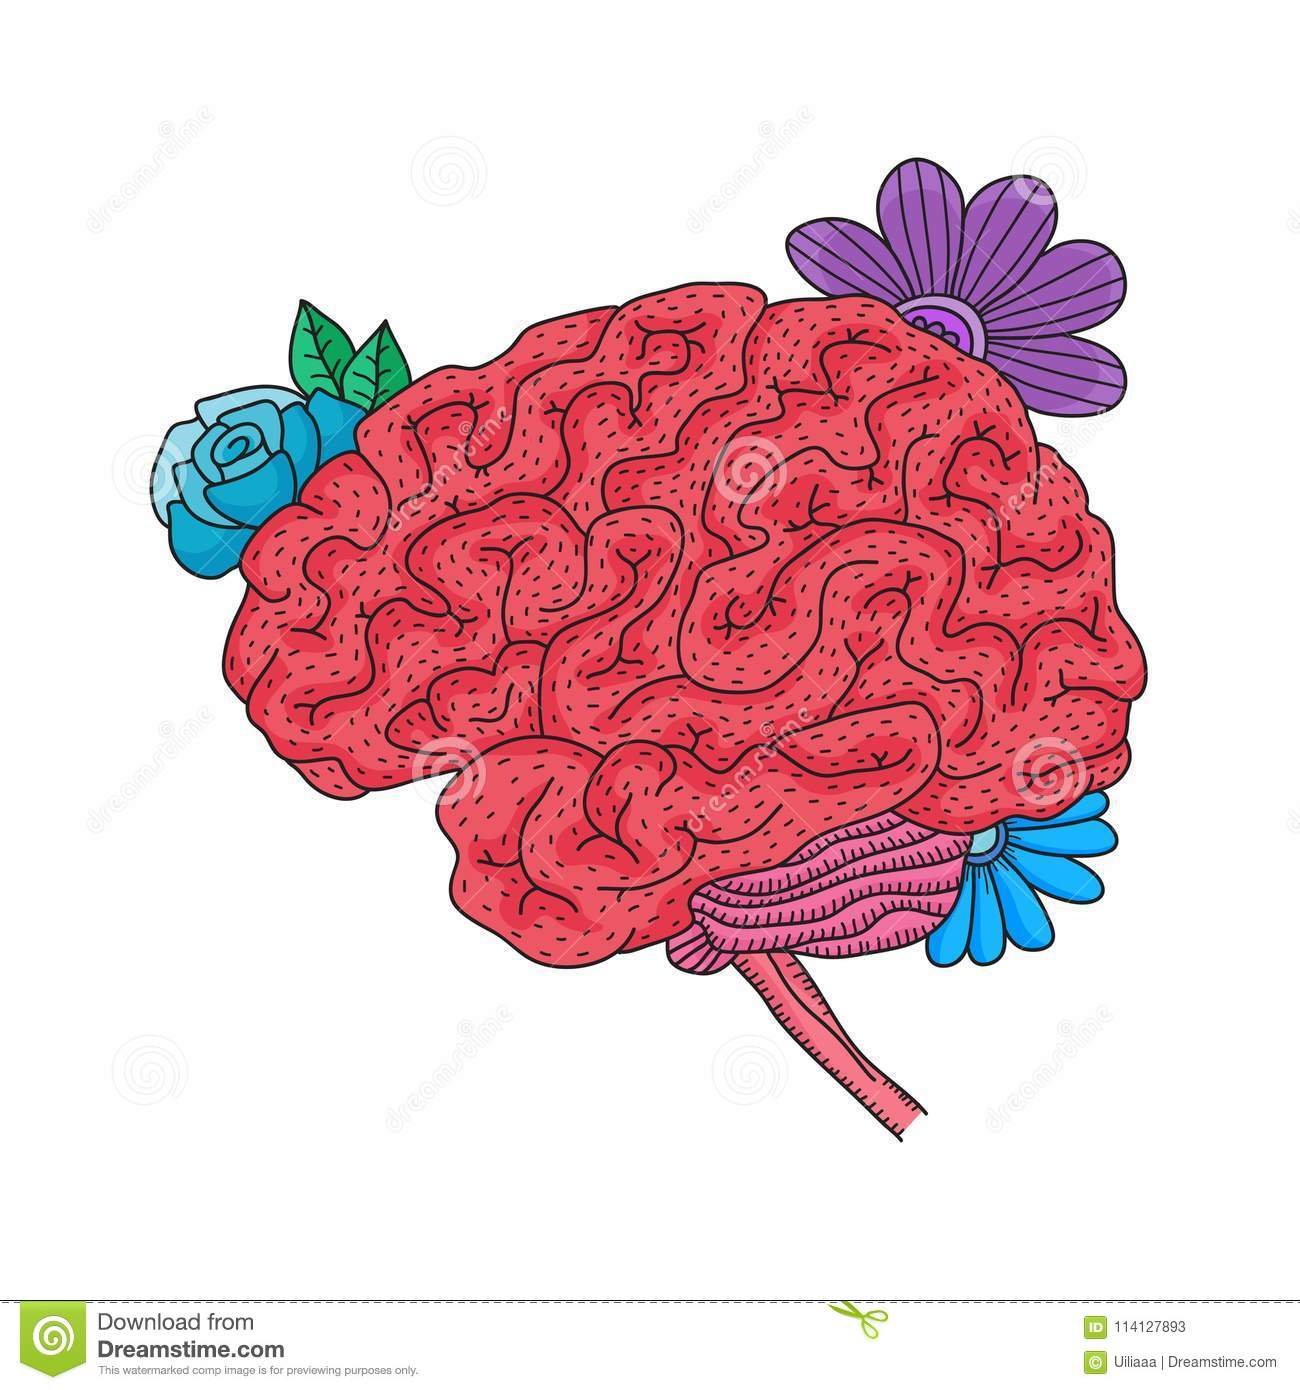 hight resolution of vector illustration of human brain isolated on white background flower throat diagram